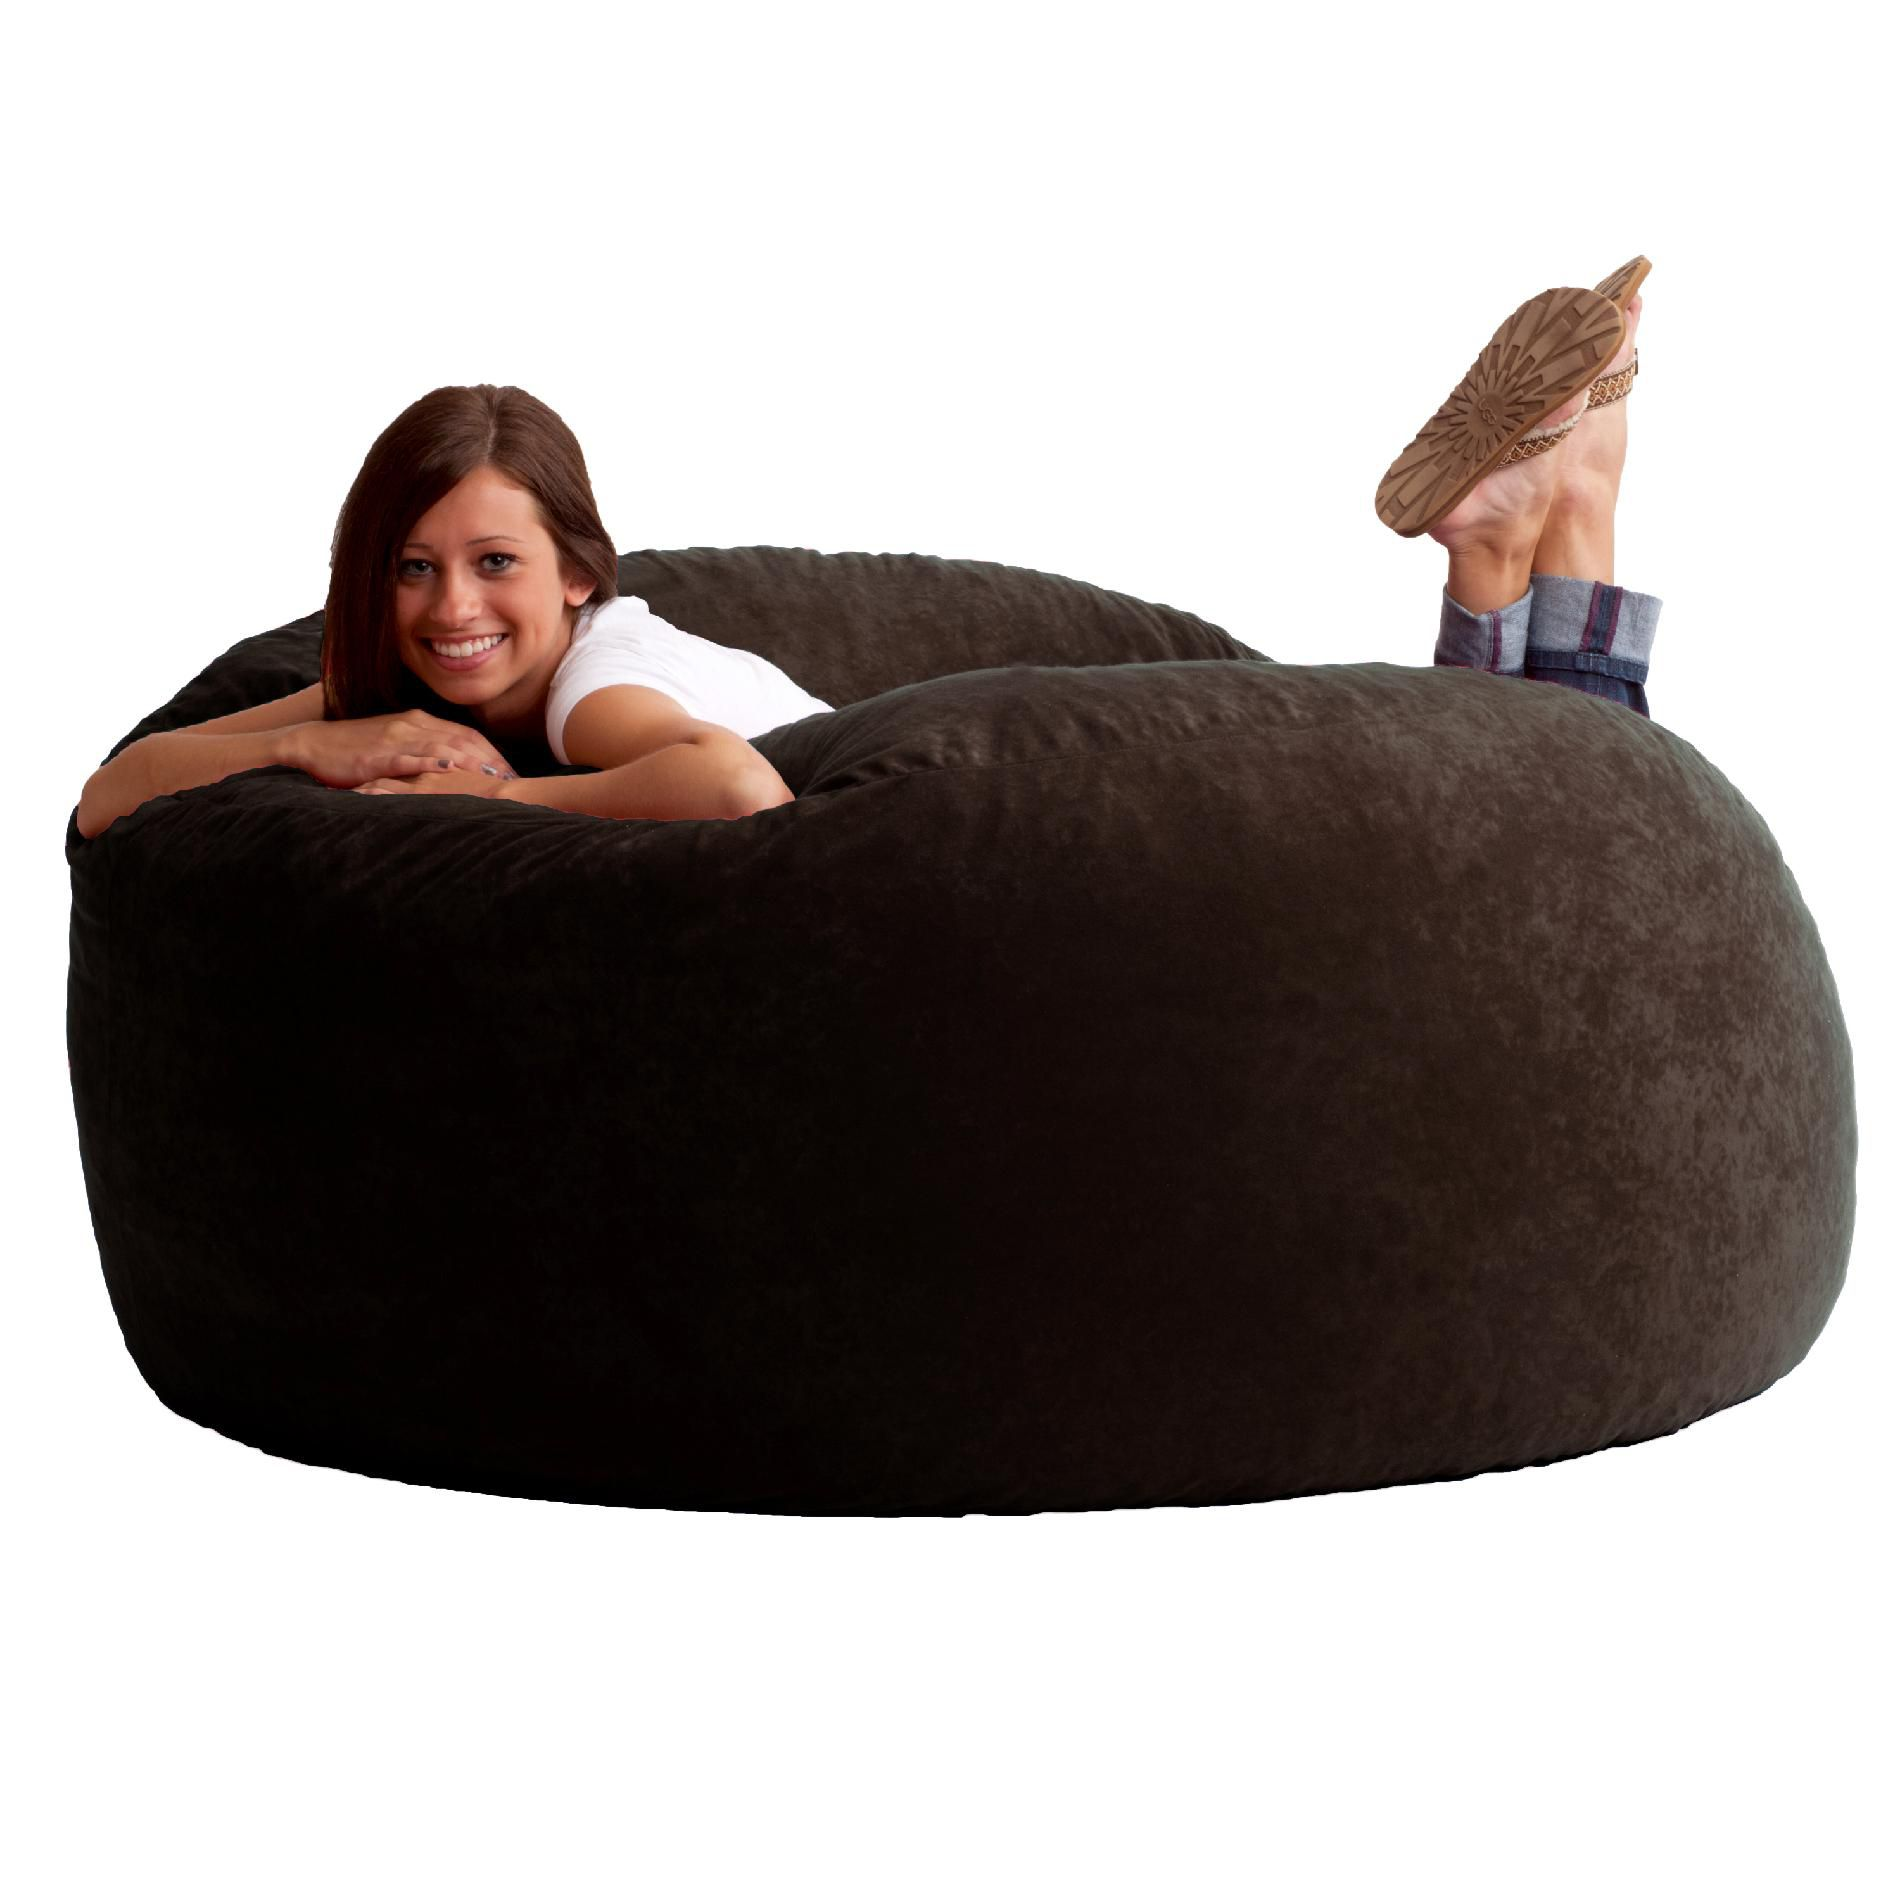 Comfort Research 5 King Fuf Bean Bag Chair in Black Onyx